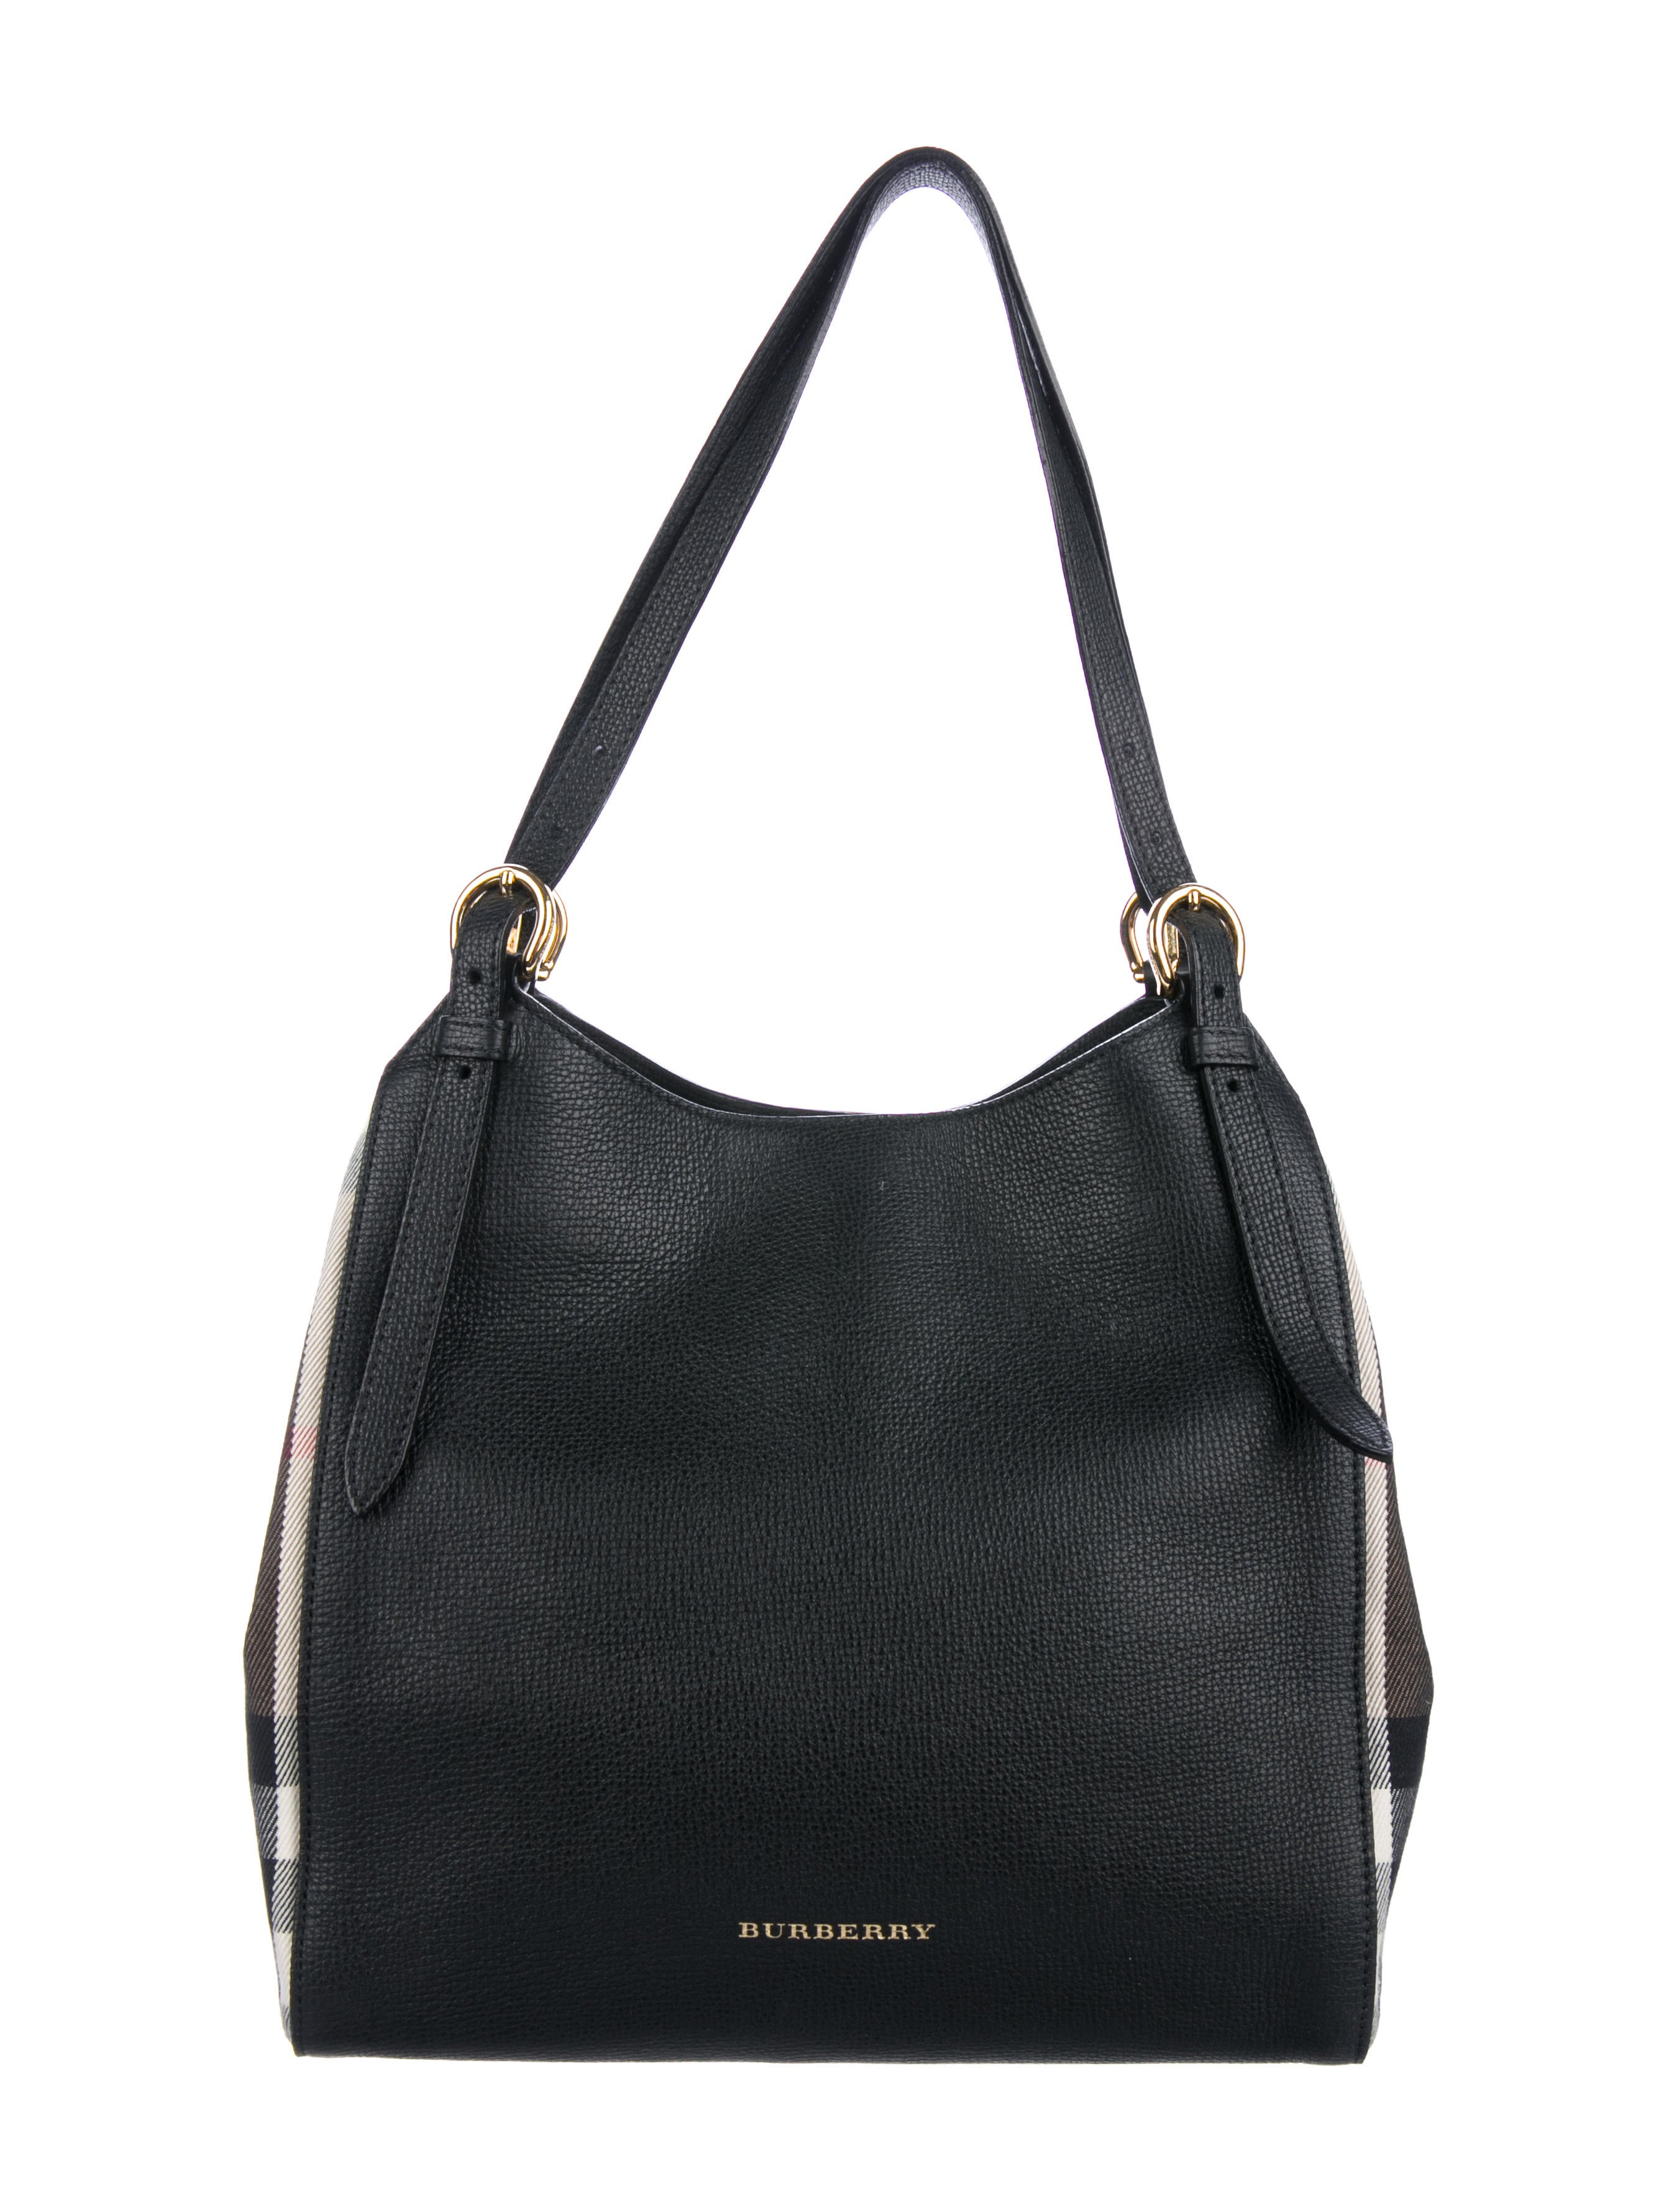 988a4215dd14 Burberry Small Canter House Check   Leather Shoulder Bag - Handbags ...